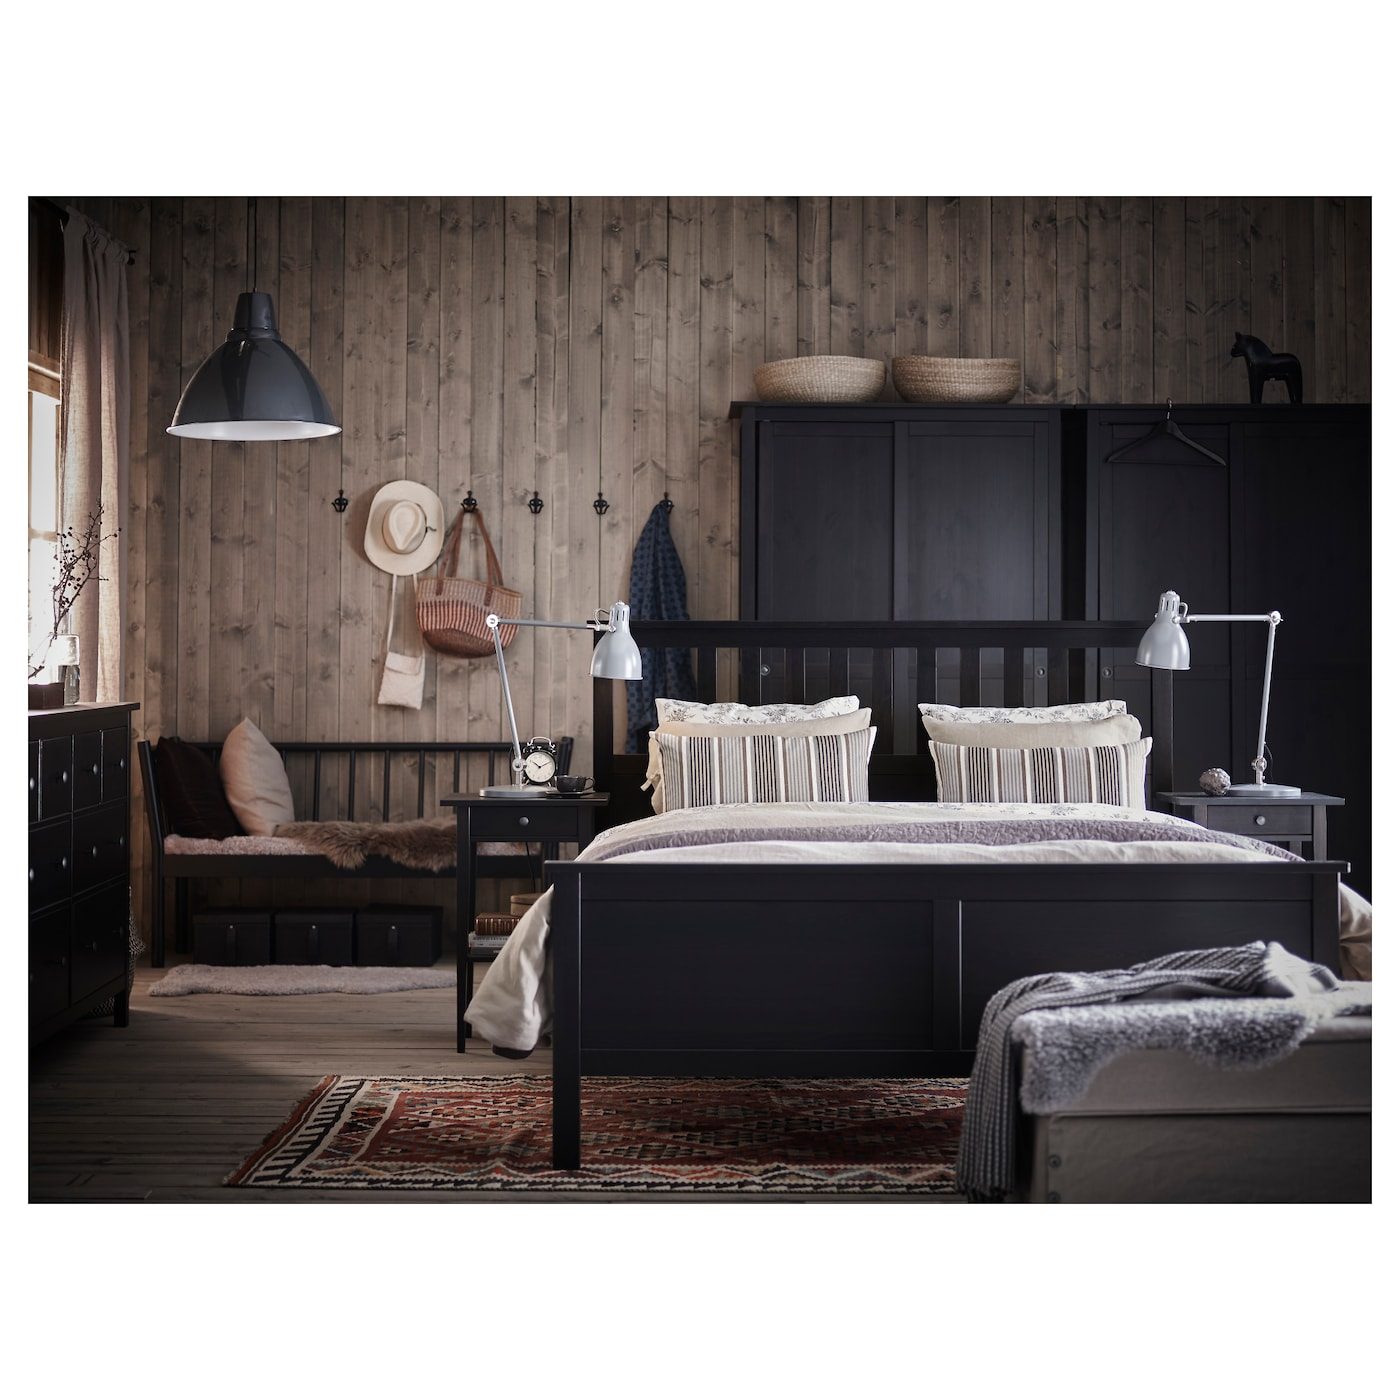 hemnes cadre de lit brun noir leirsund 160x200 cm ikea. Black Bedroom Furniture Sets. Home Design Ideas